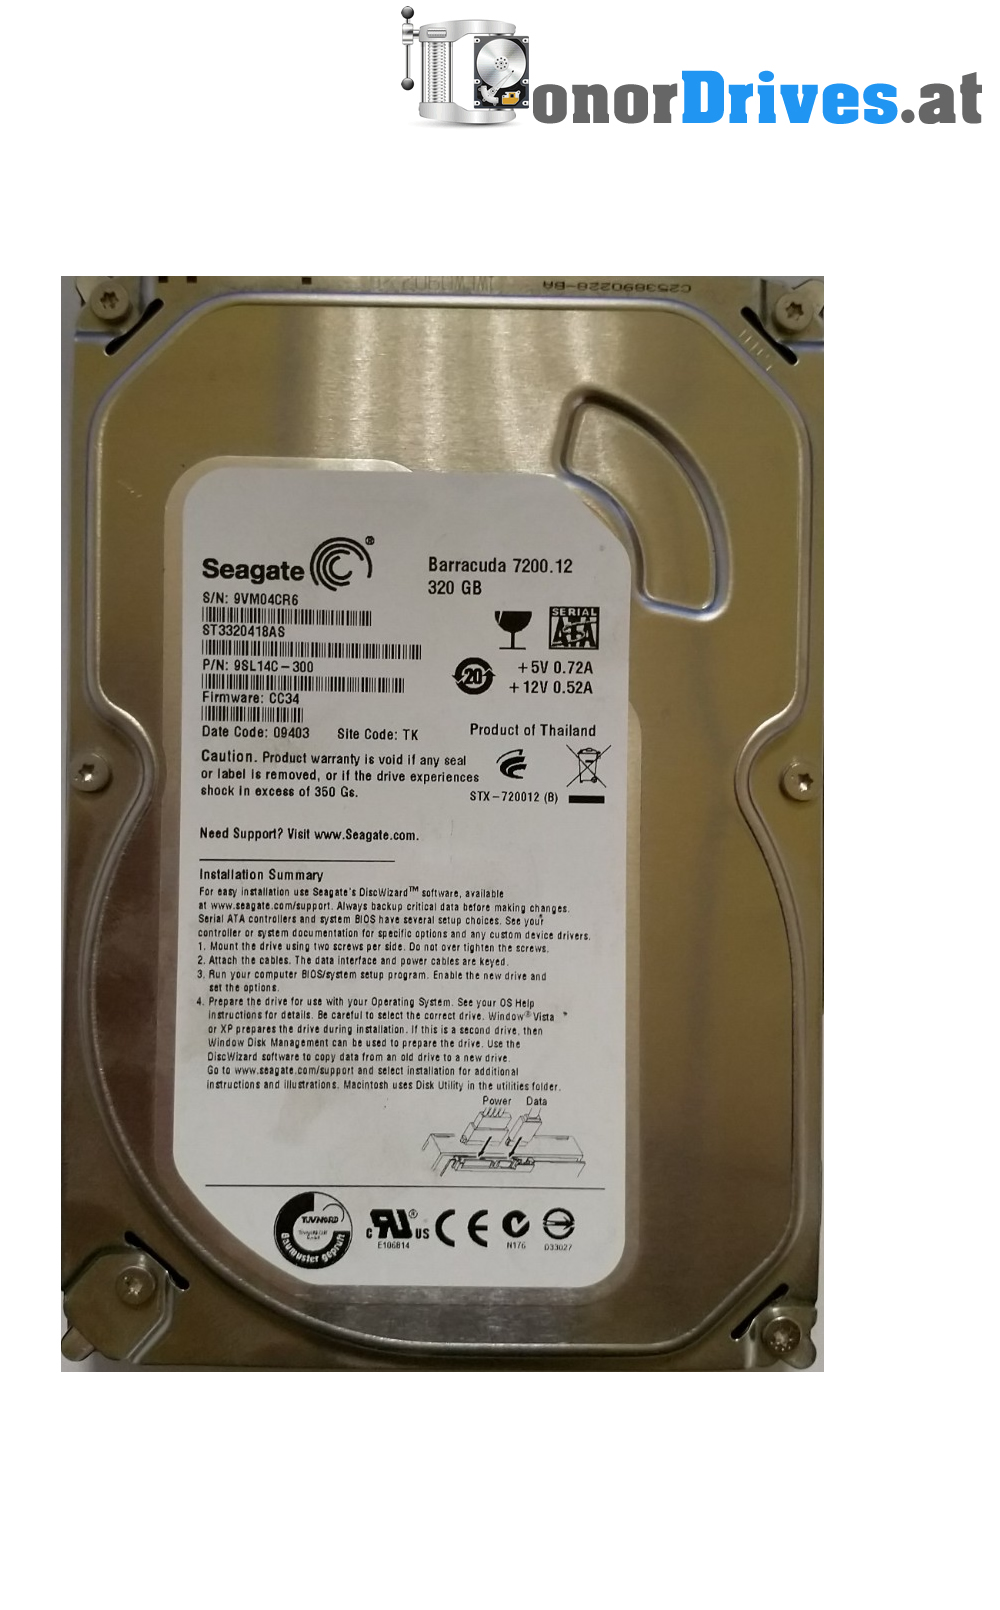 Seagate ST3320418AS SATA Drive Driver for Mac Download